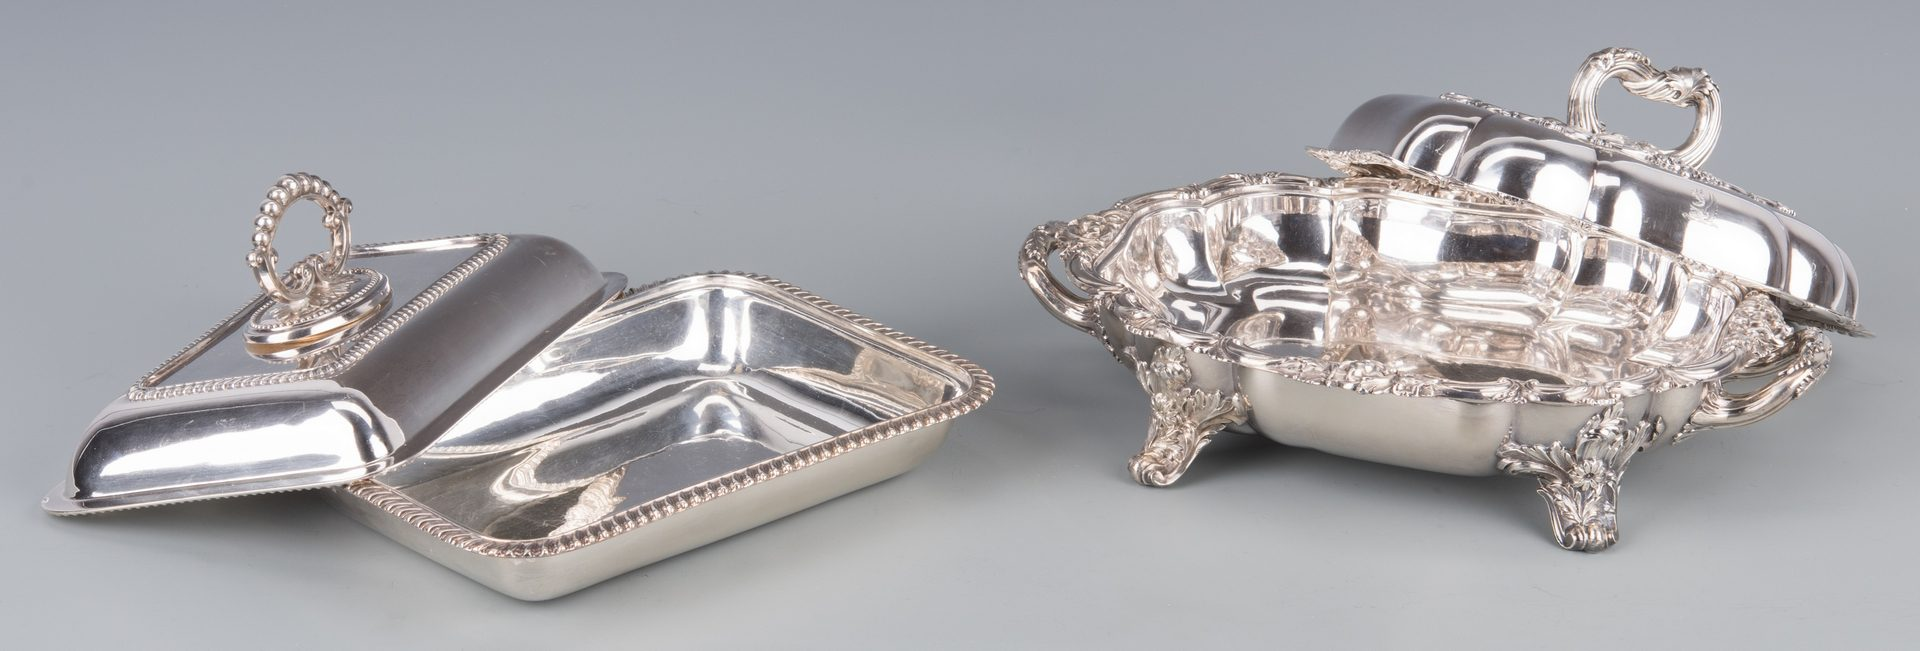 Lot 944: 5 pcs English Silverplated Hollowware